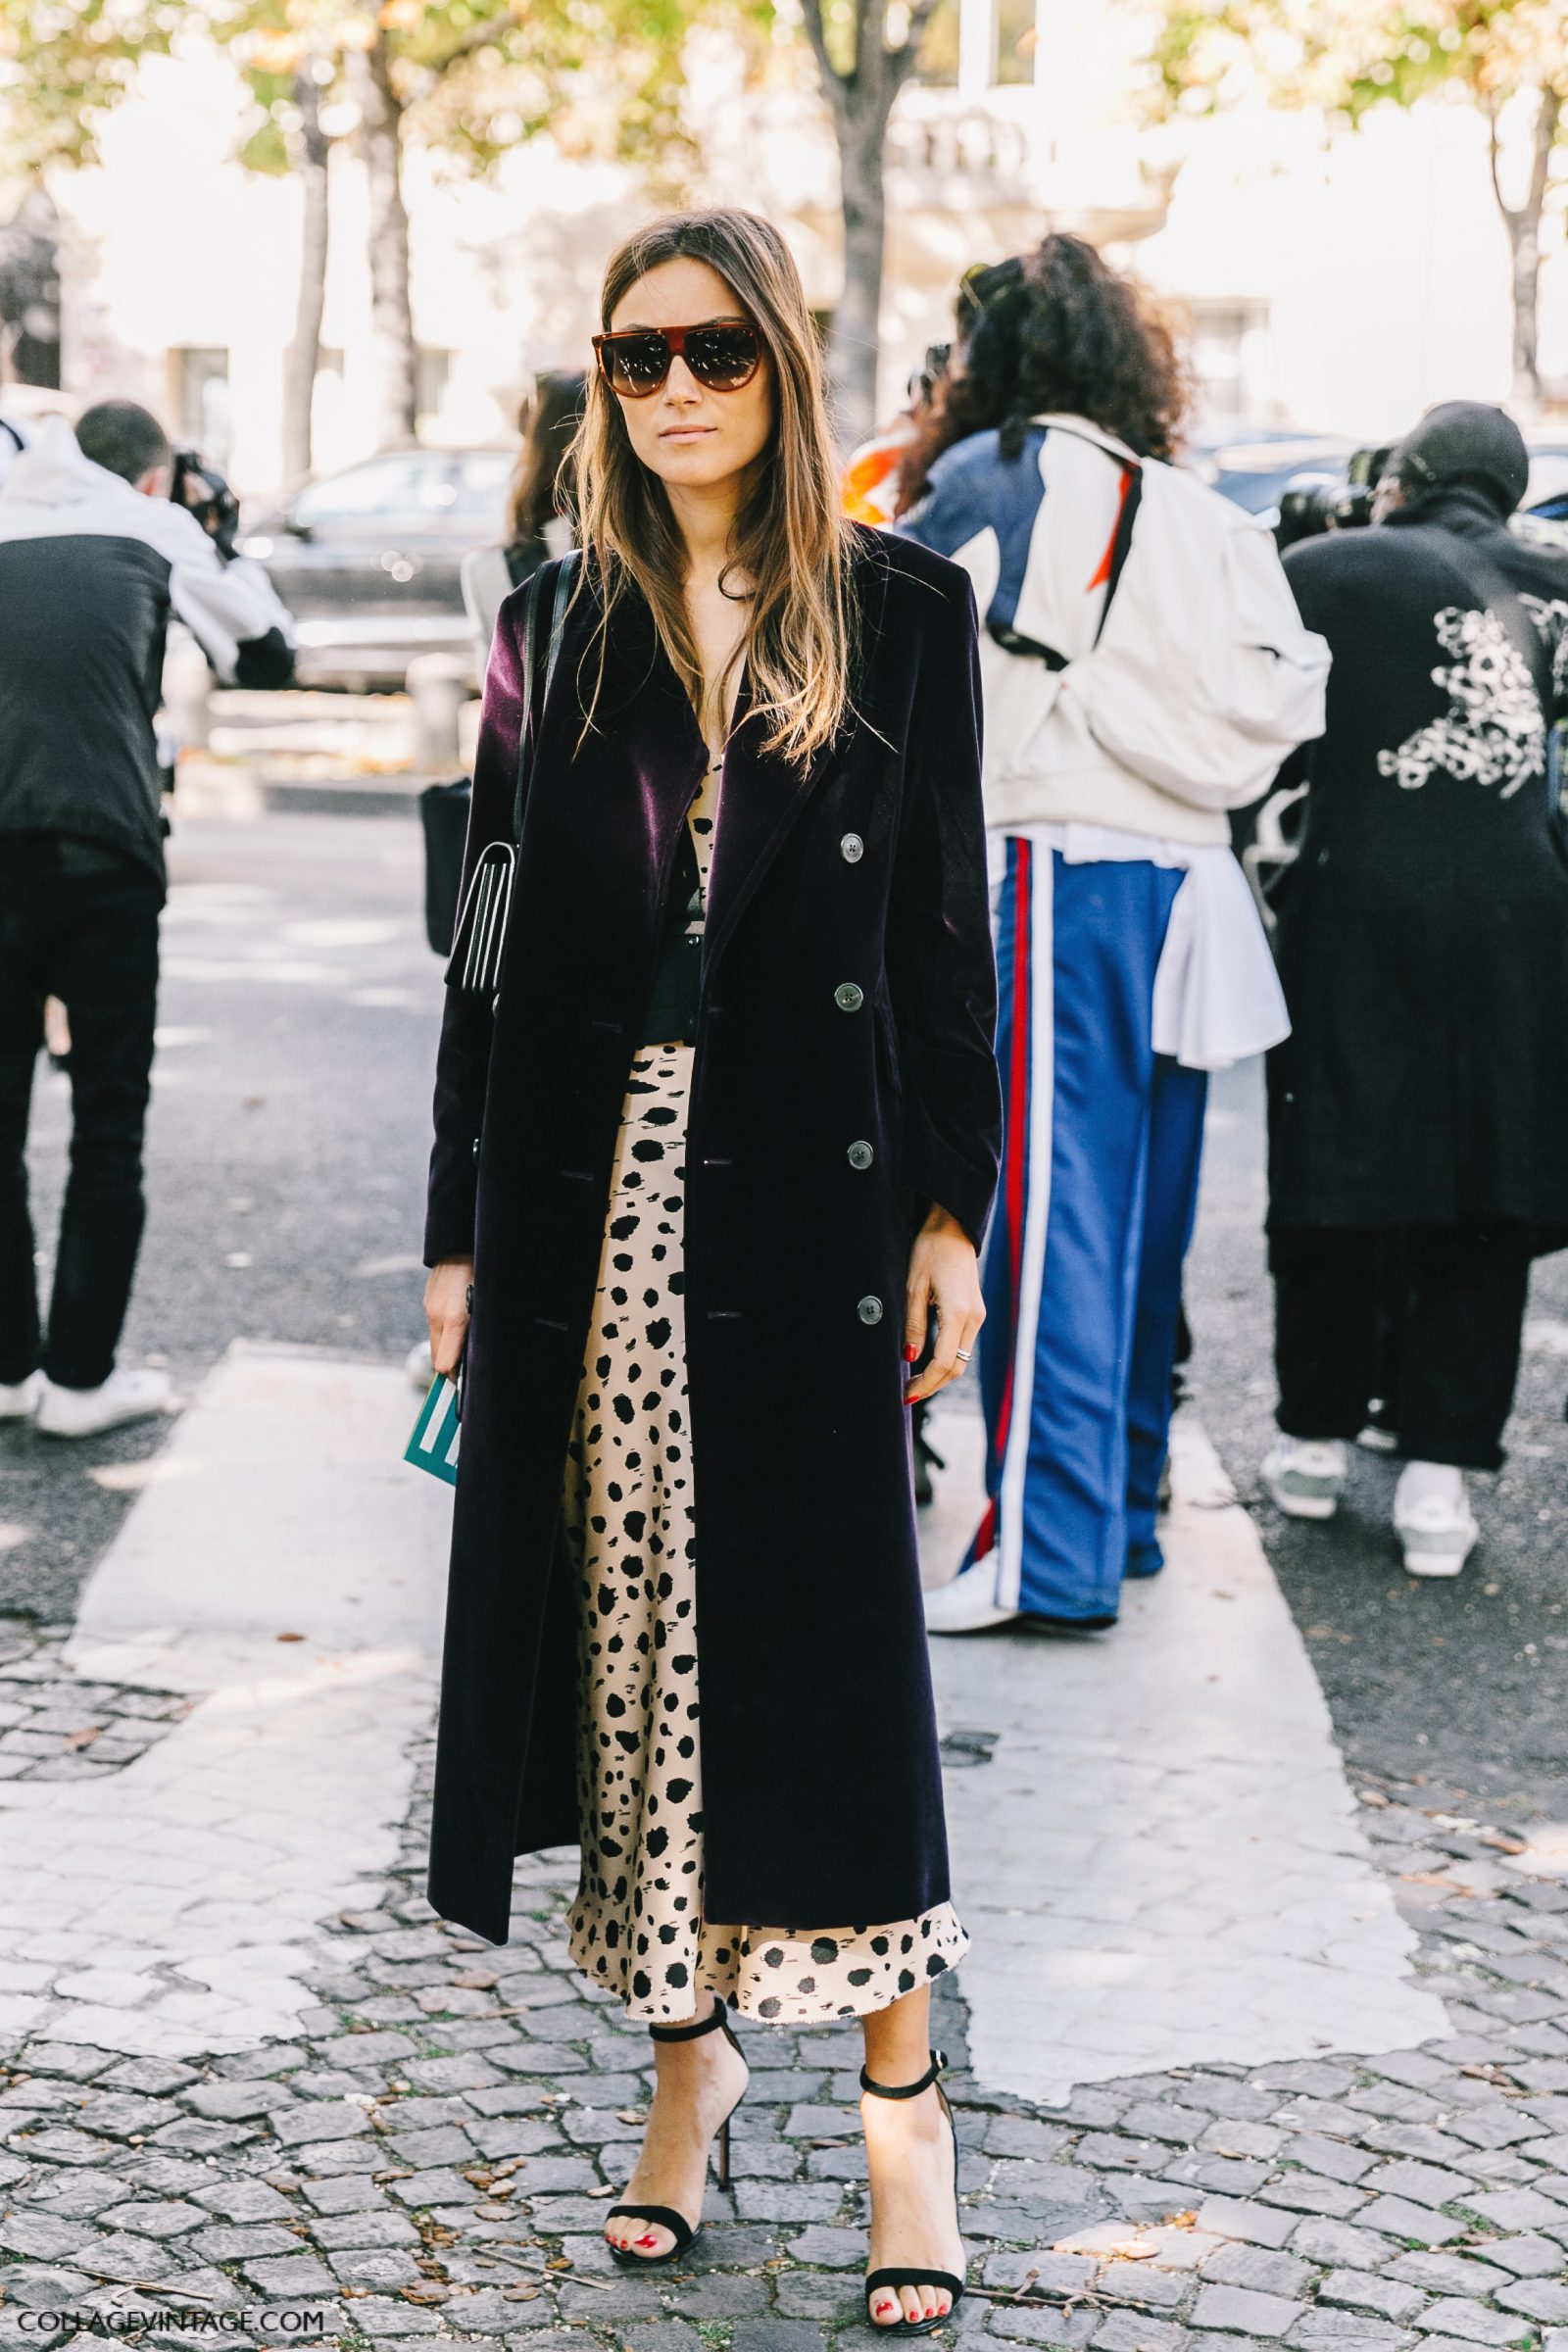 pfw-paris_fashion_week_ss17-street_style-outfit-collage_vintage-louis_vuitton-miu_miu-81